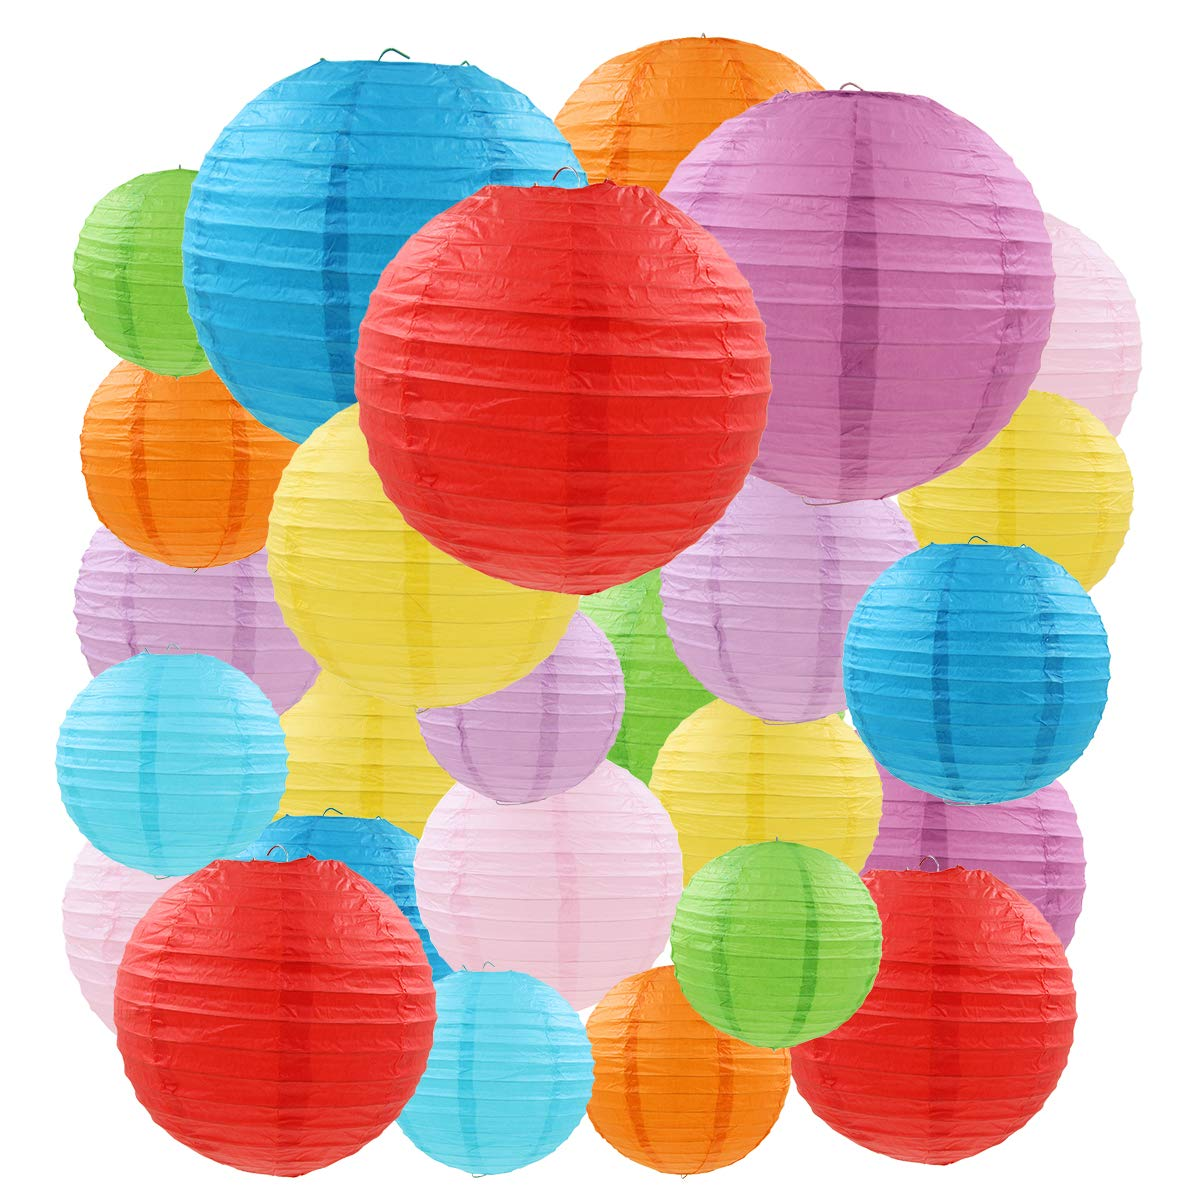 Cieovo 26 Pcs Colorful Paper Lanterns (Multicolor,Size of 4'', 6'', 8'',10'',12'') - Chinese/Japanese Paper Hanging Decorations Ball Lanterns Lamps for Home Decor, Parties, and Weddings